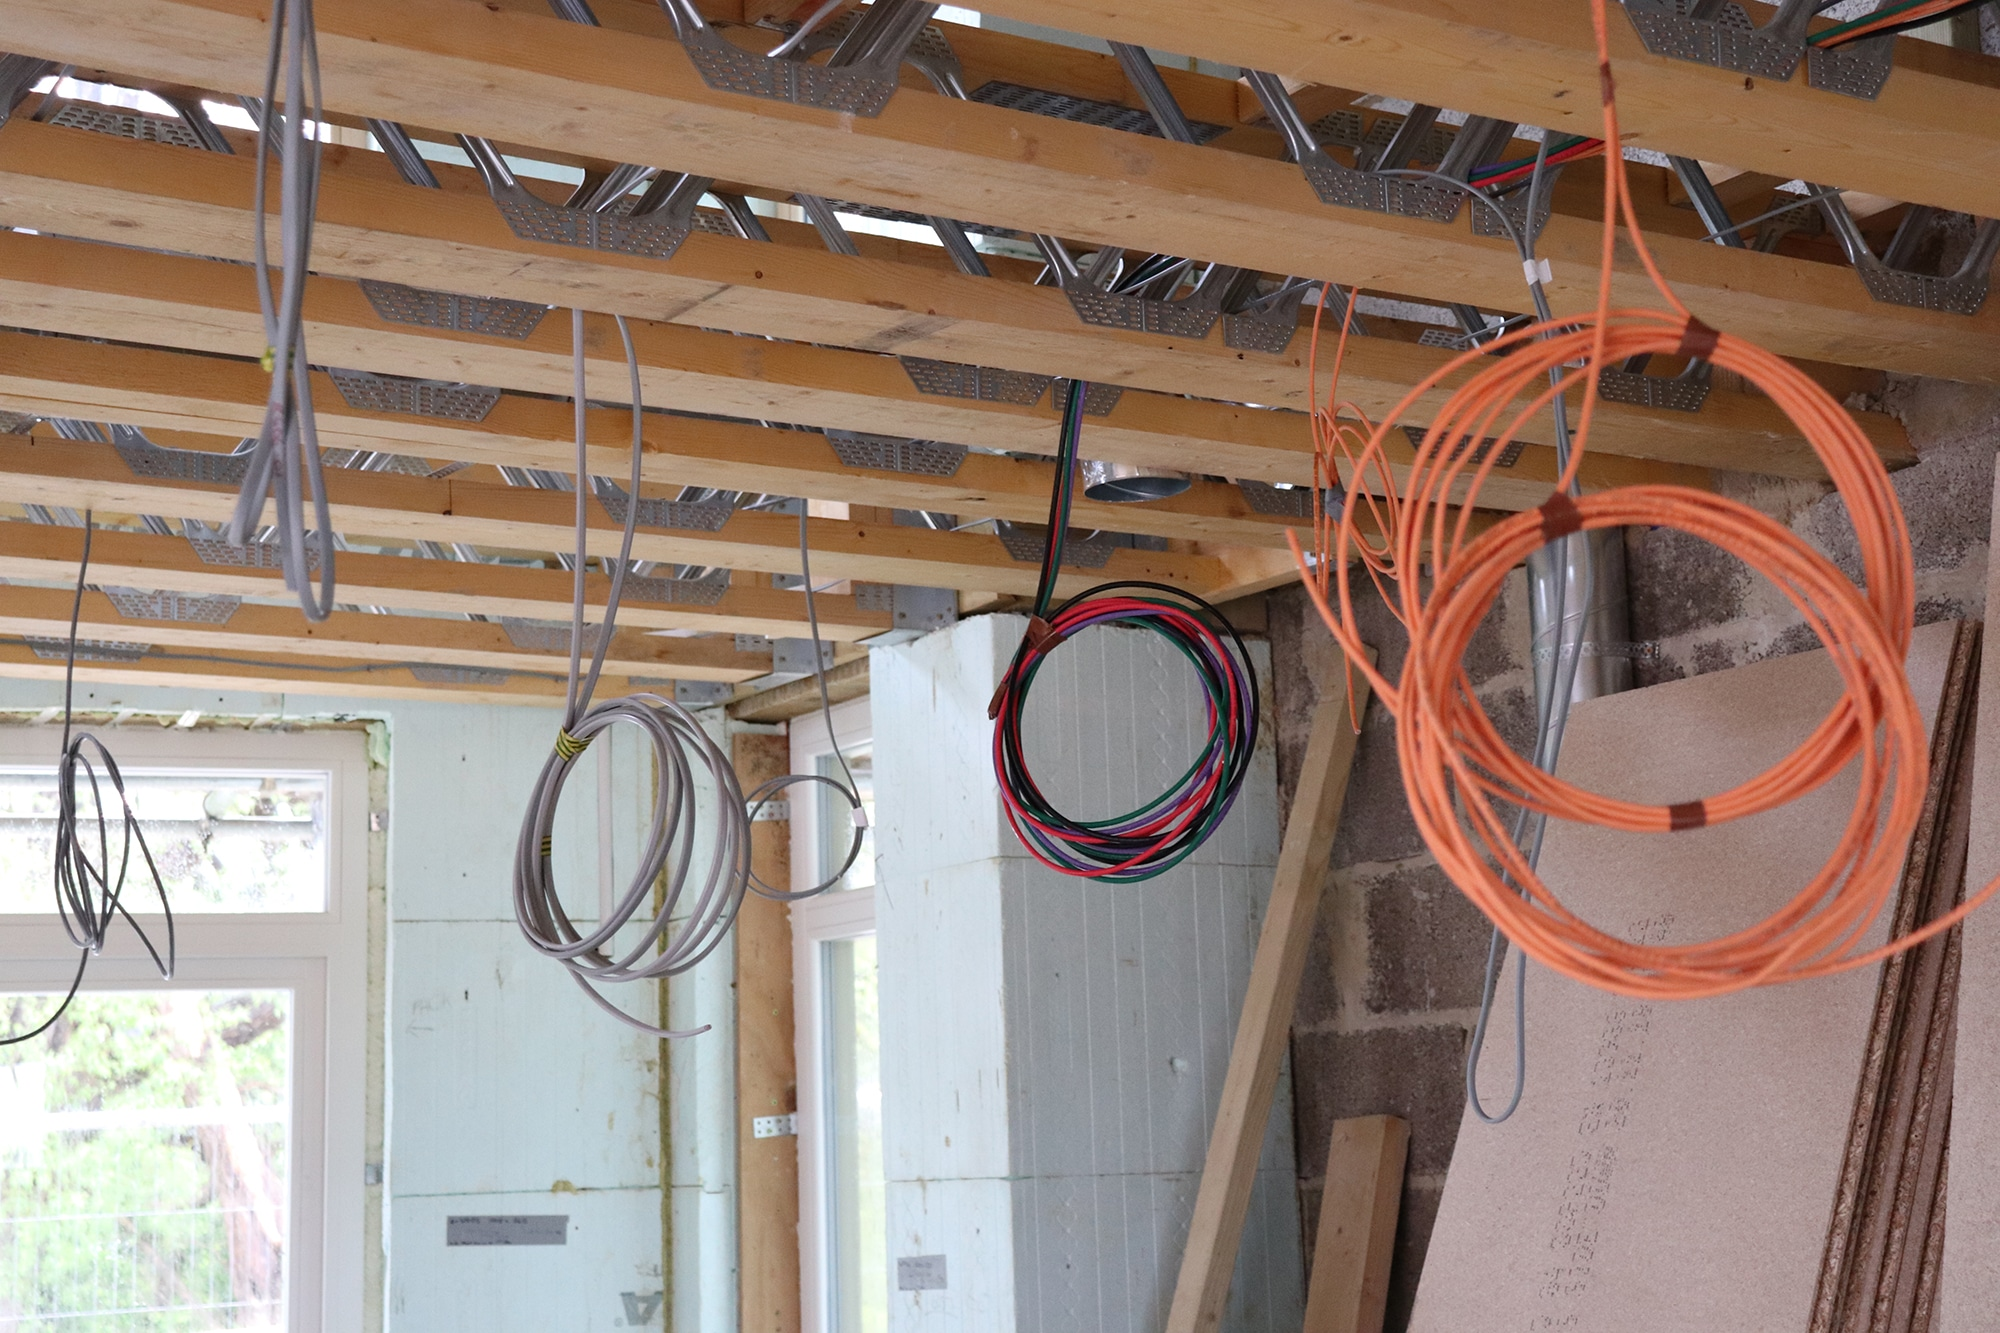 smart home wiring first fix smart home electrics at the build it education house build smart home wiring diagram pdf first fix smart home electrics at the